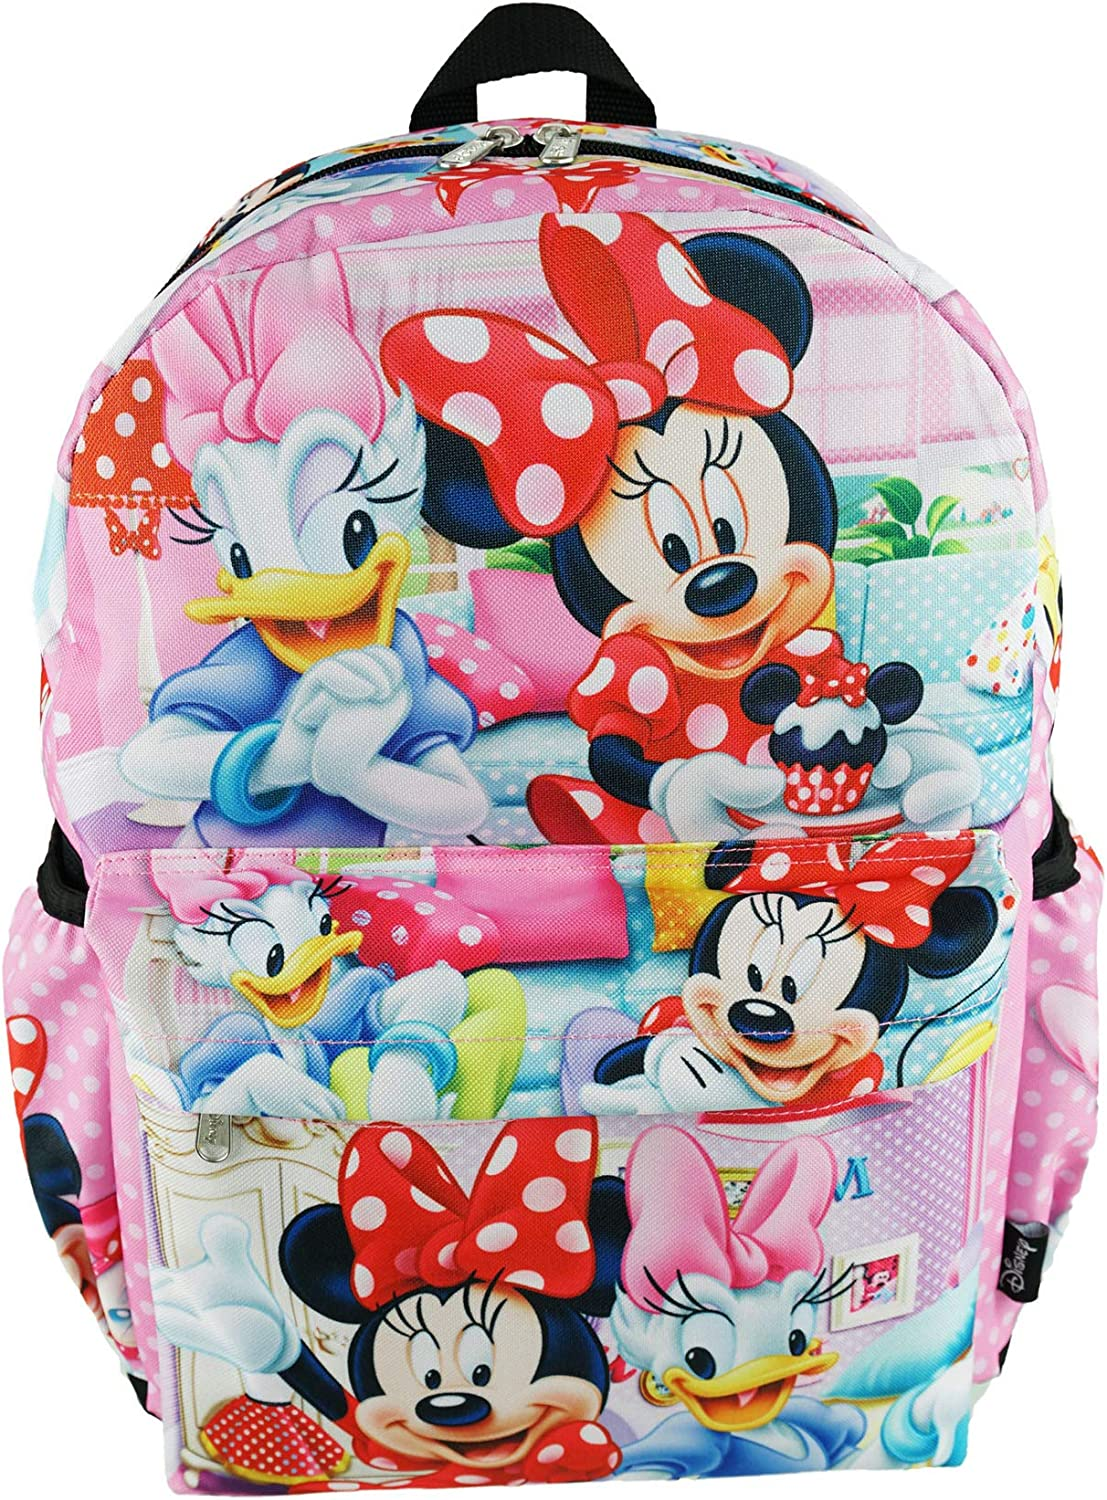 "Minnie Mouse Deluxe Oversize Print Large 16"" Backpack with Laptop Compartment - A19750"